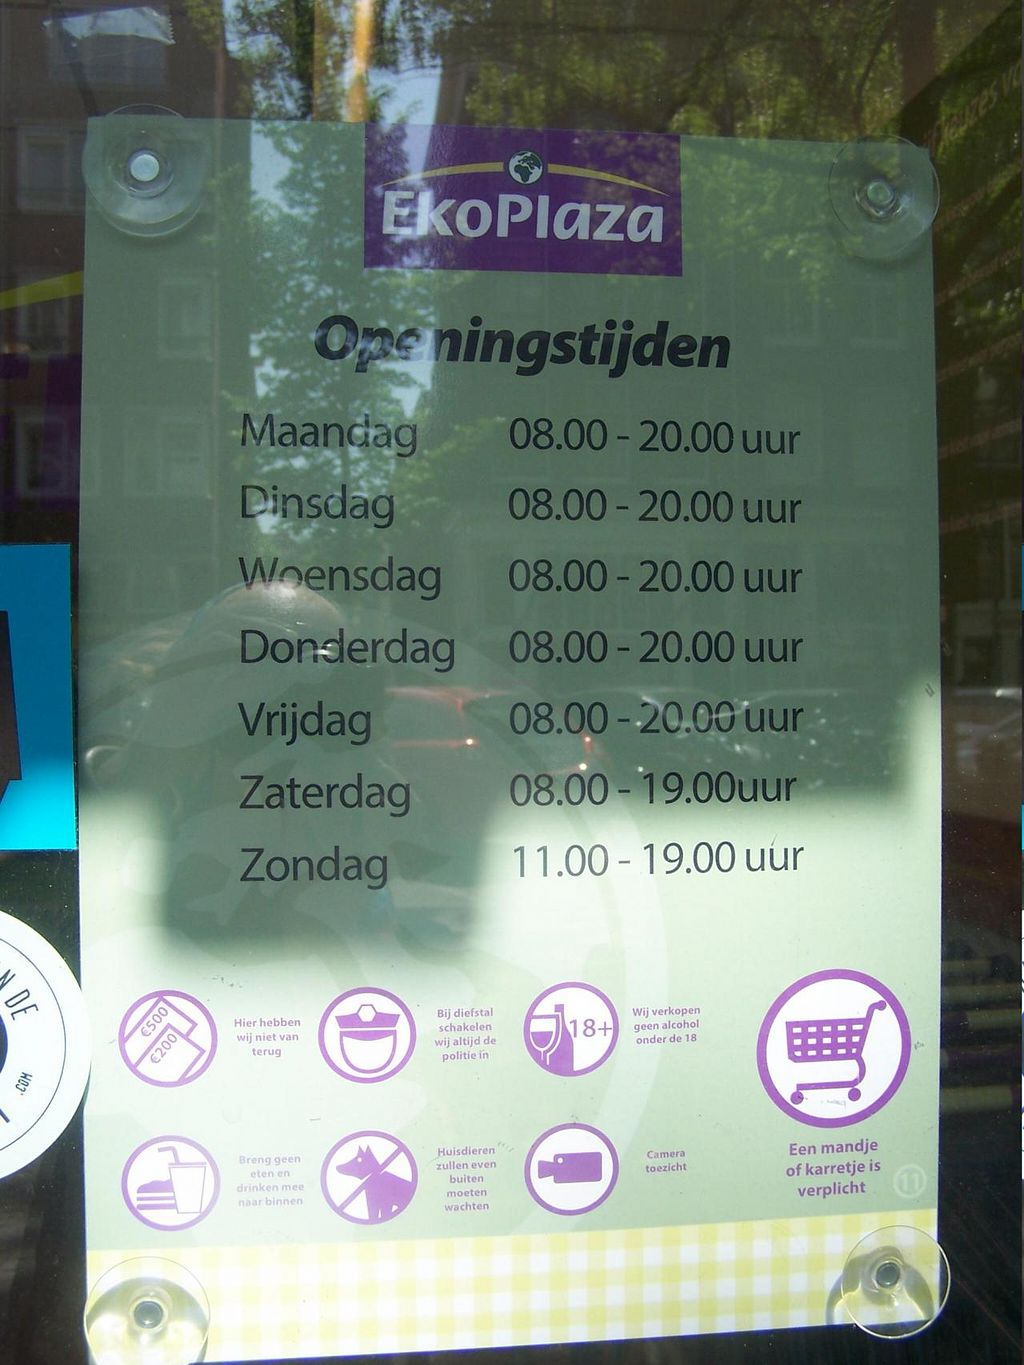 """Photo of Ekoplaza - Elandsgracht  by <a href=""""/members/profile/Amy1274"""">Amy1274</a> <br/>Opening times <br/> July 19, 2014  - <a href='/contact/abuse/image/2930/74401'>Report</a>"""